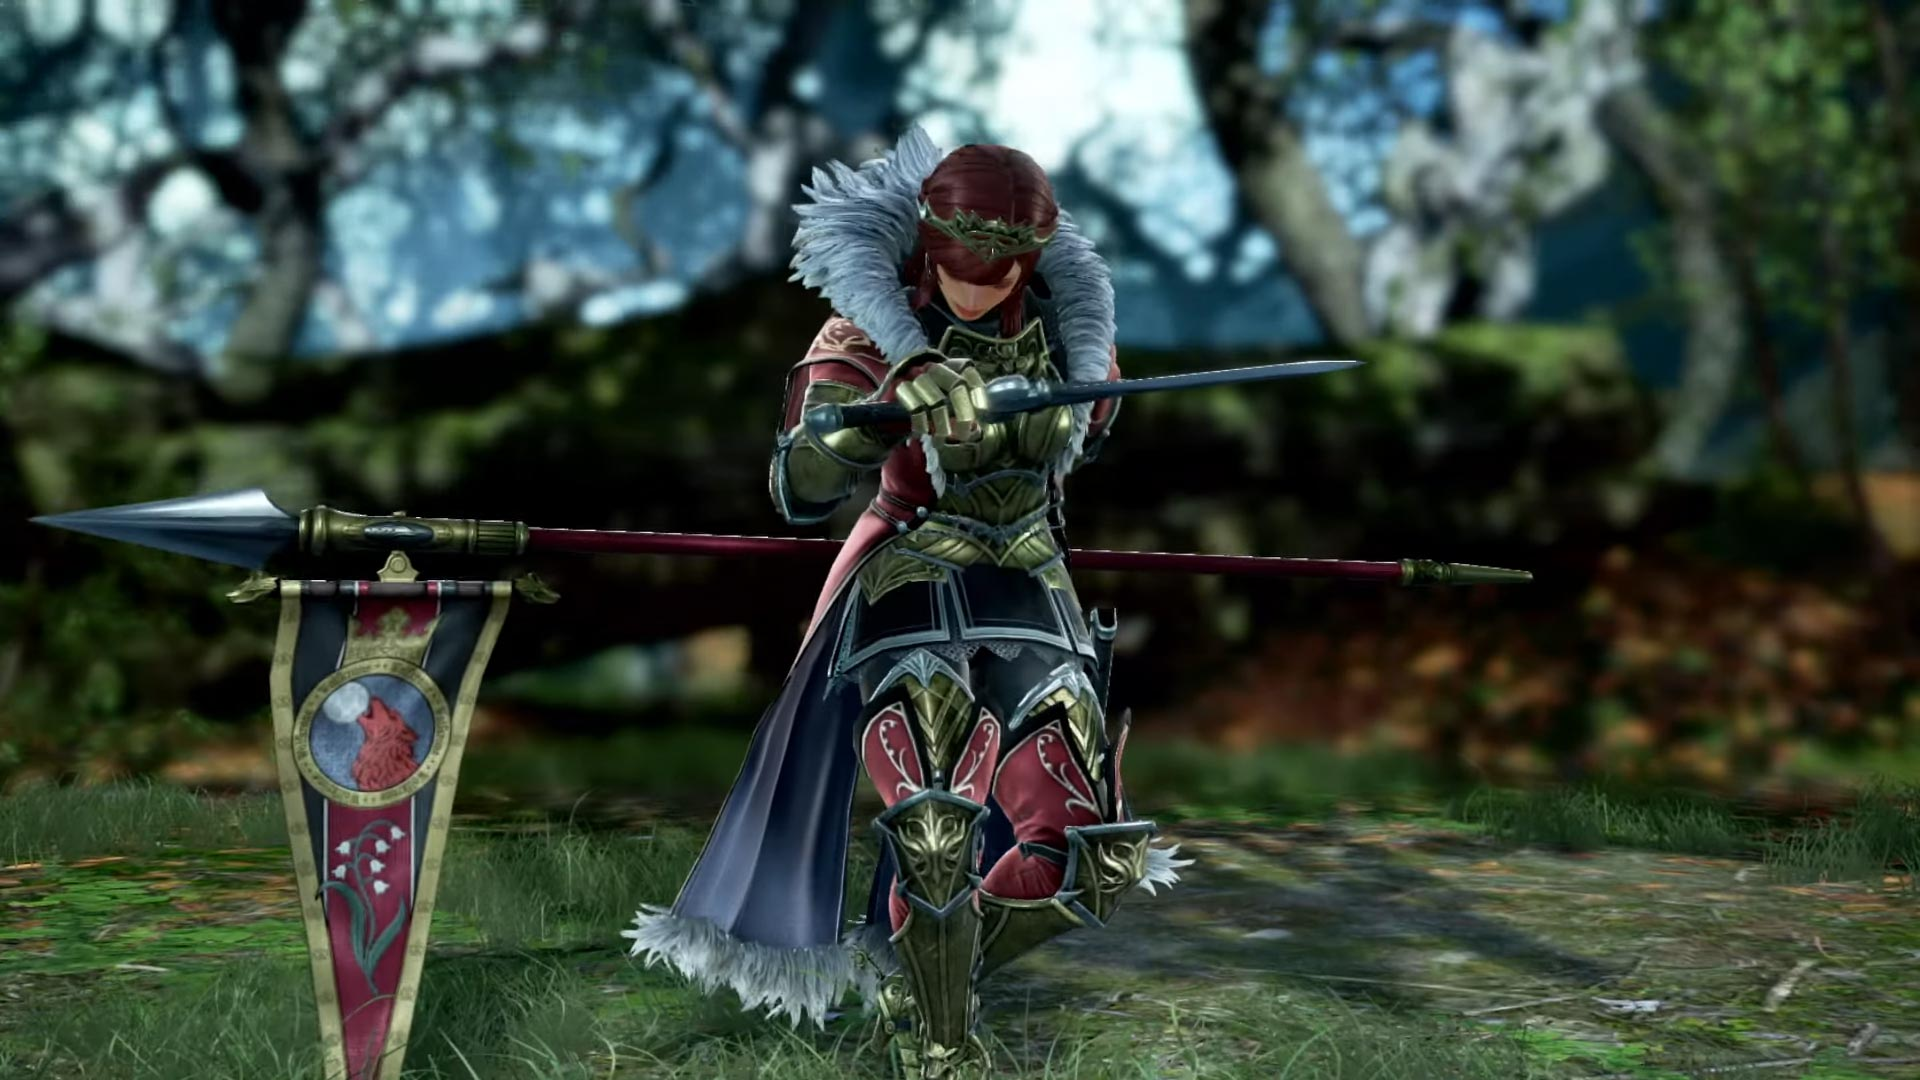 Soul Calibur 6 Hilde Reveal Trailer Gallery 3 out of 9 image gallery